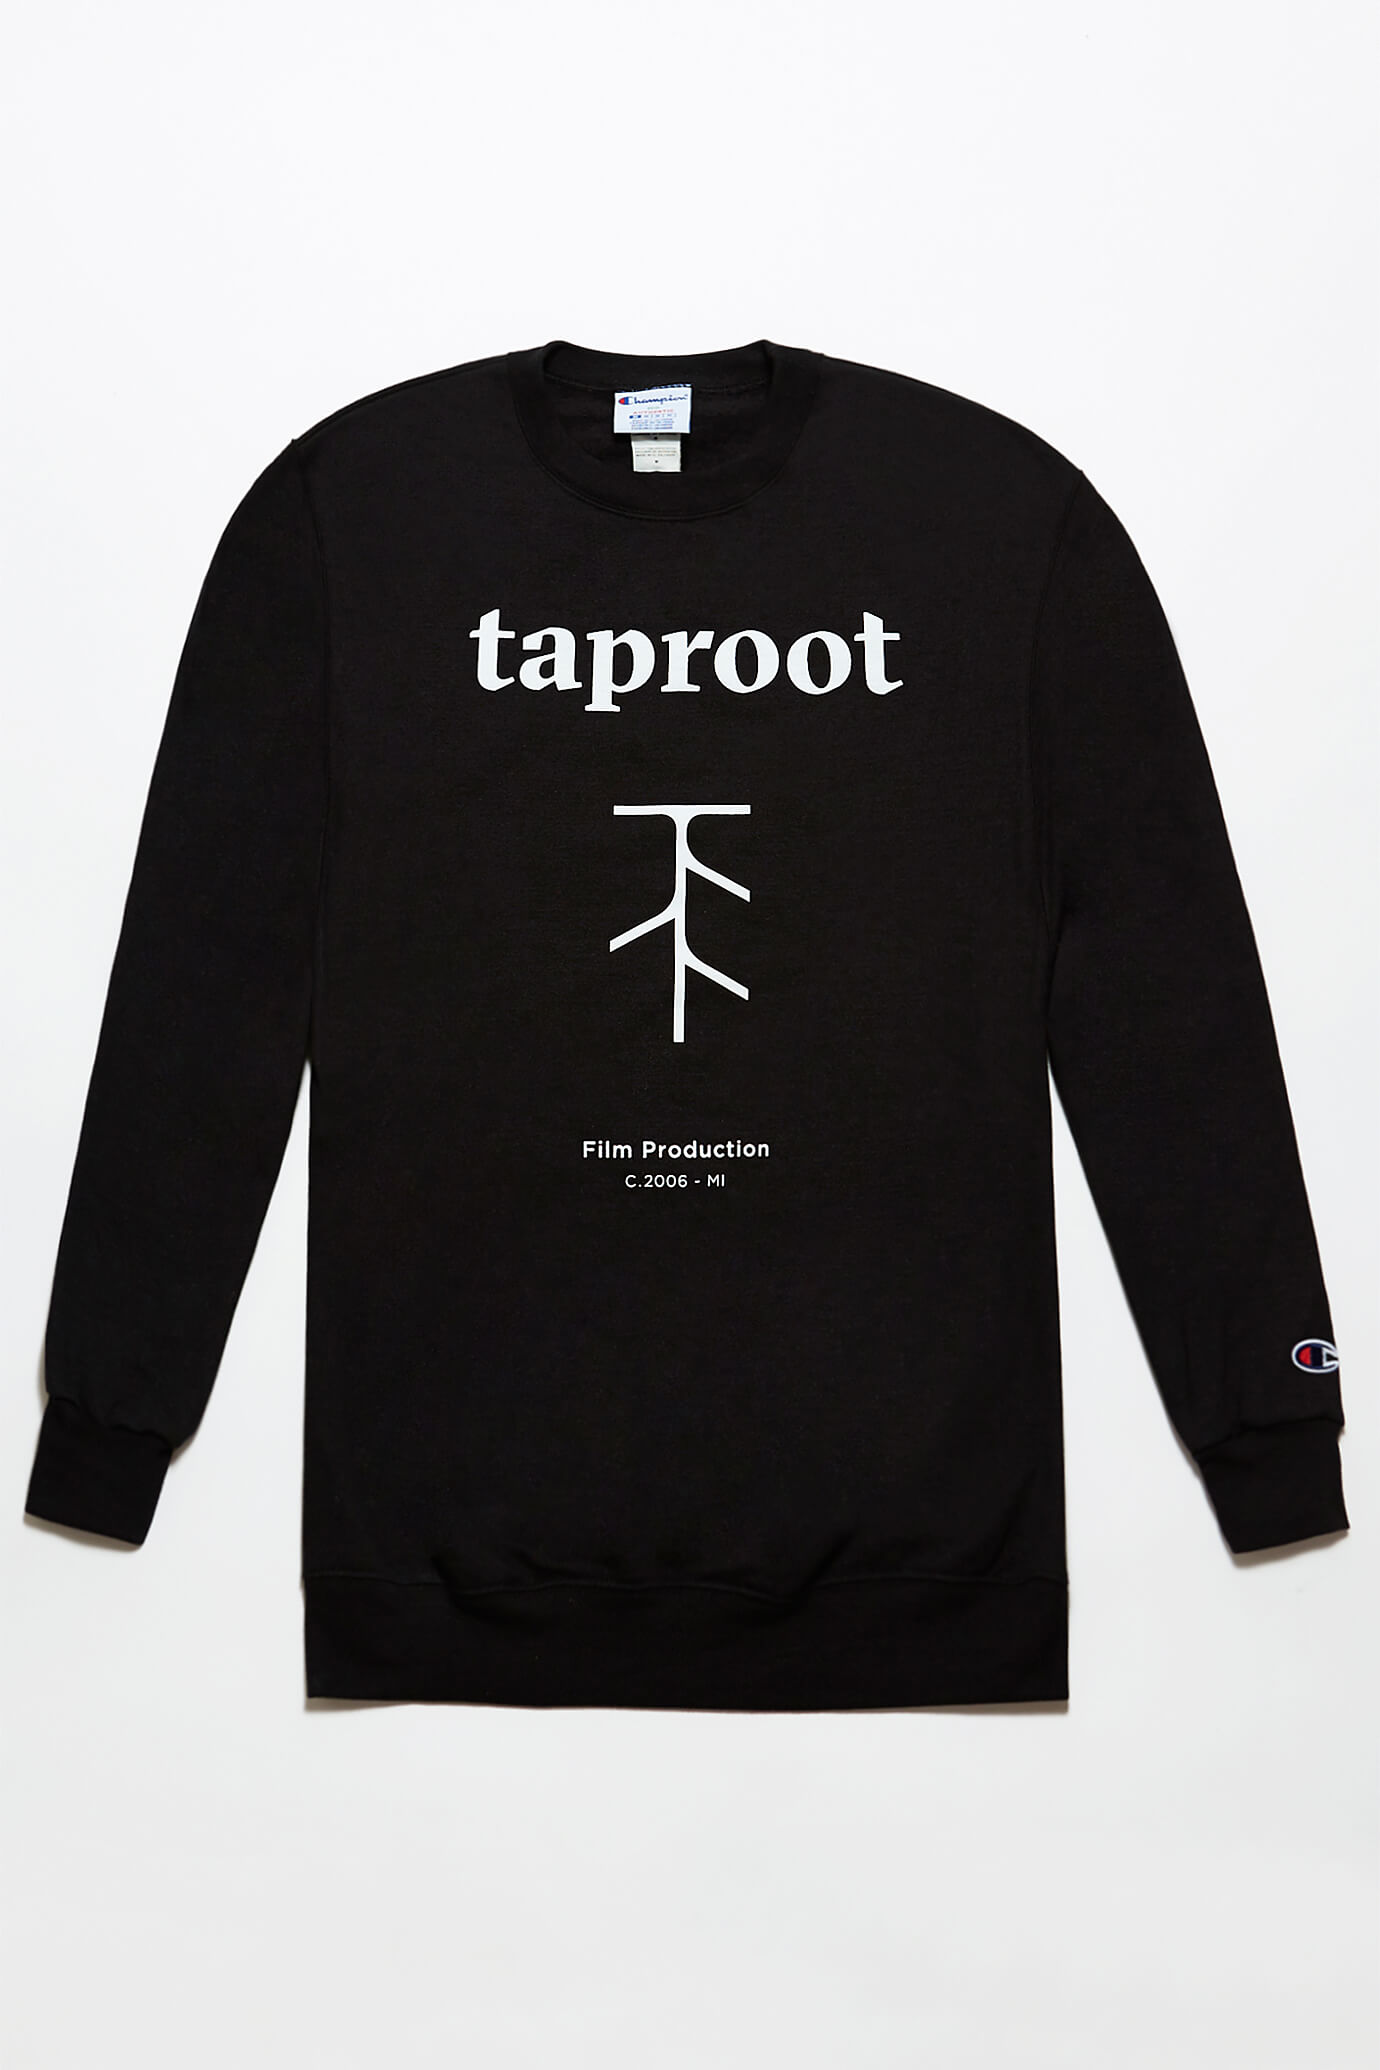 taproot pictures champion crew neck in black